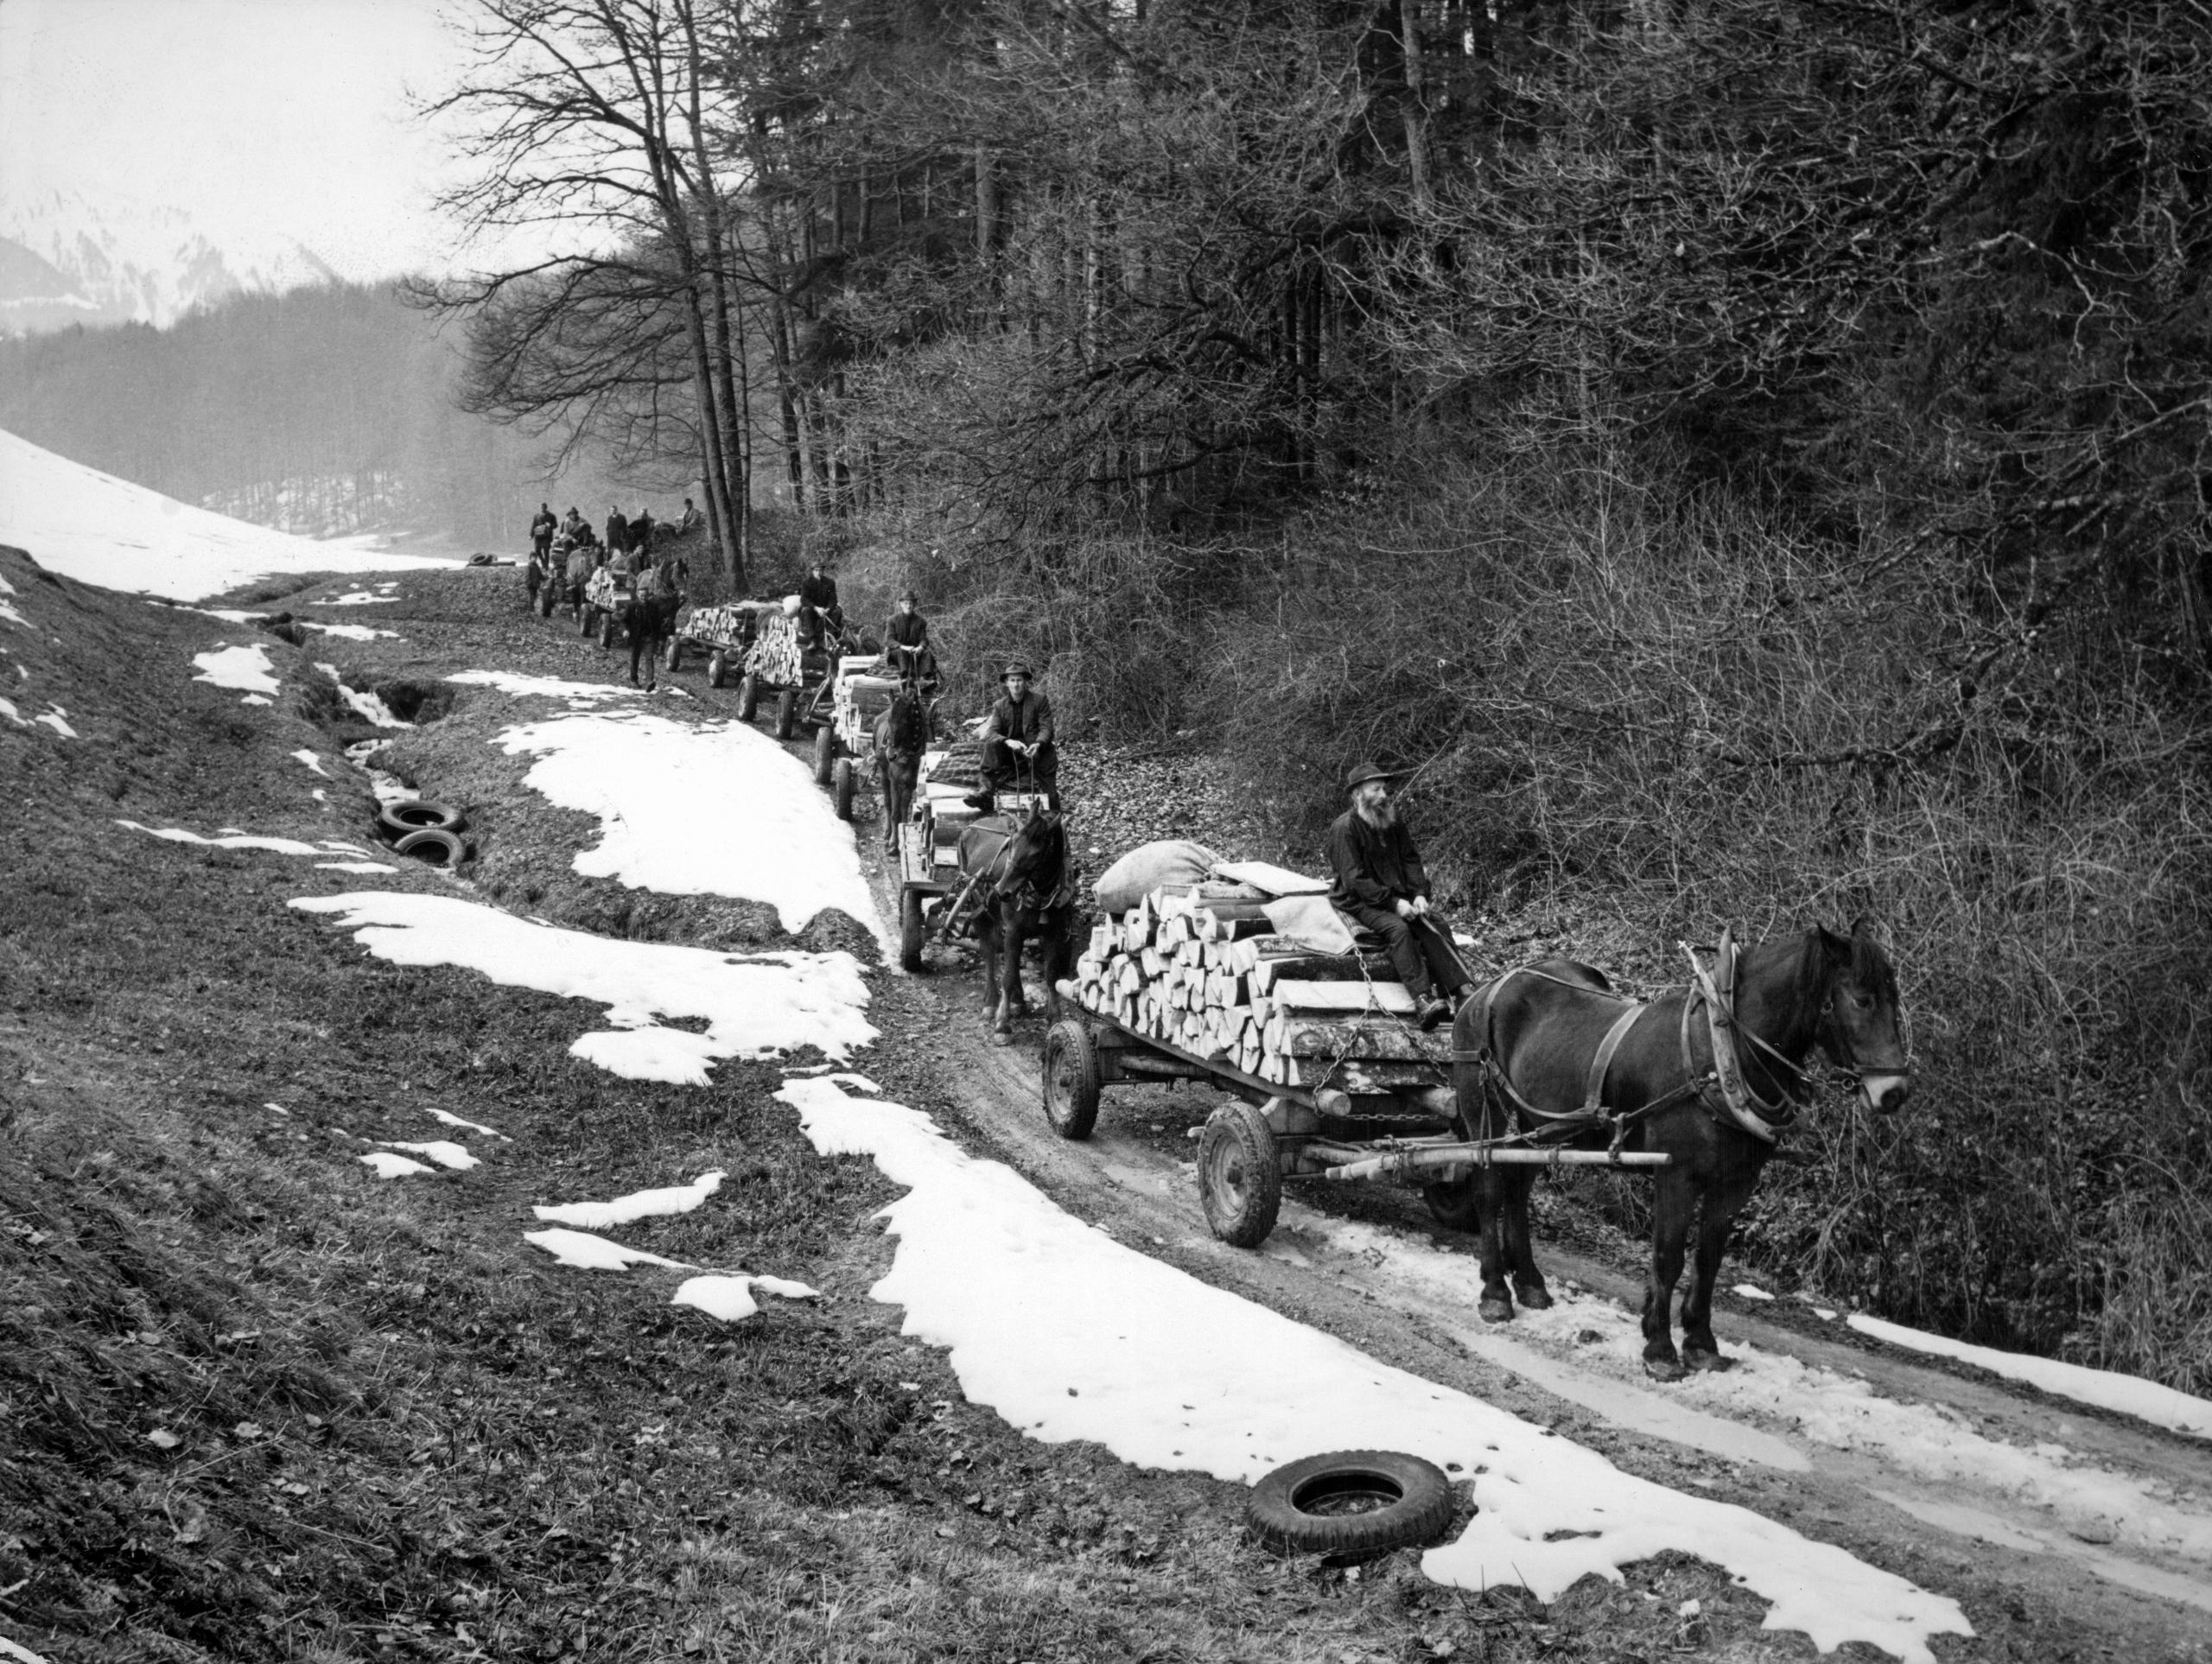 Swiss forestry workers once used horse-drawn carts to gather freshly cut wood